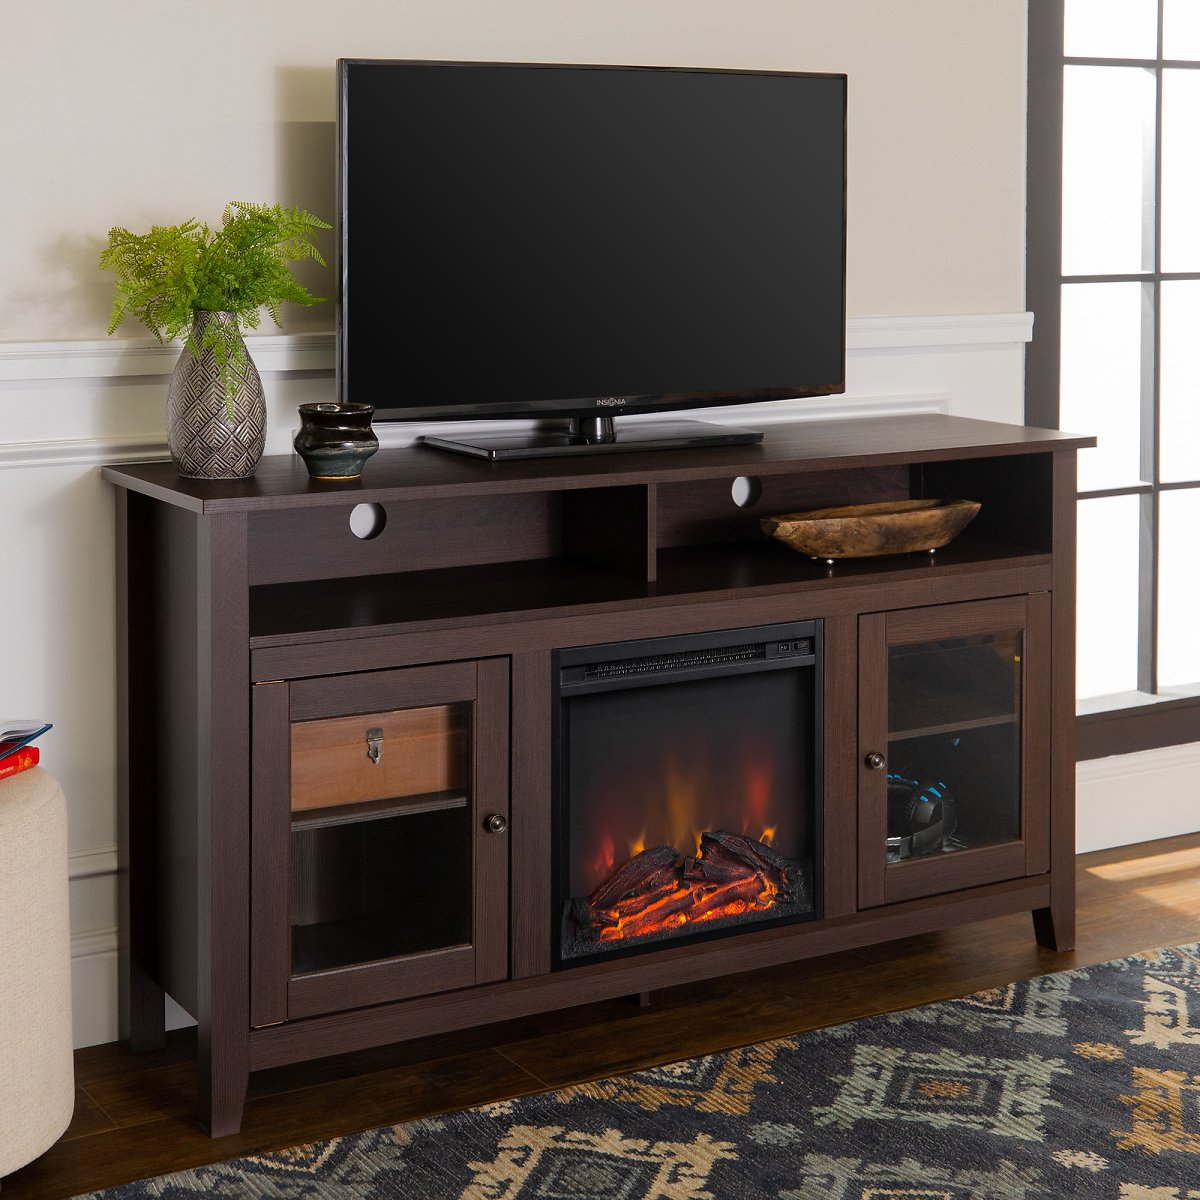 Walker Edison Tall Fireplace TV Stand for TVs Up to 64